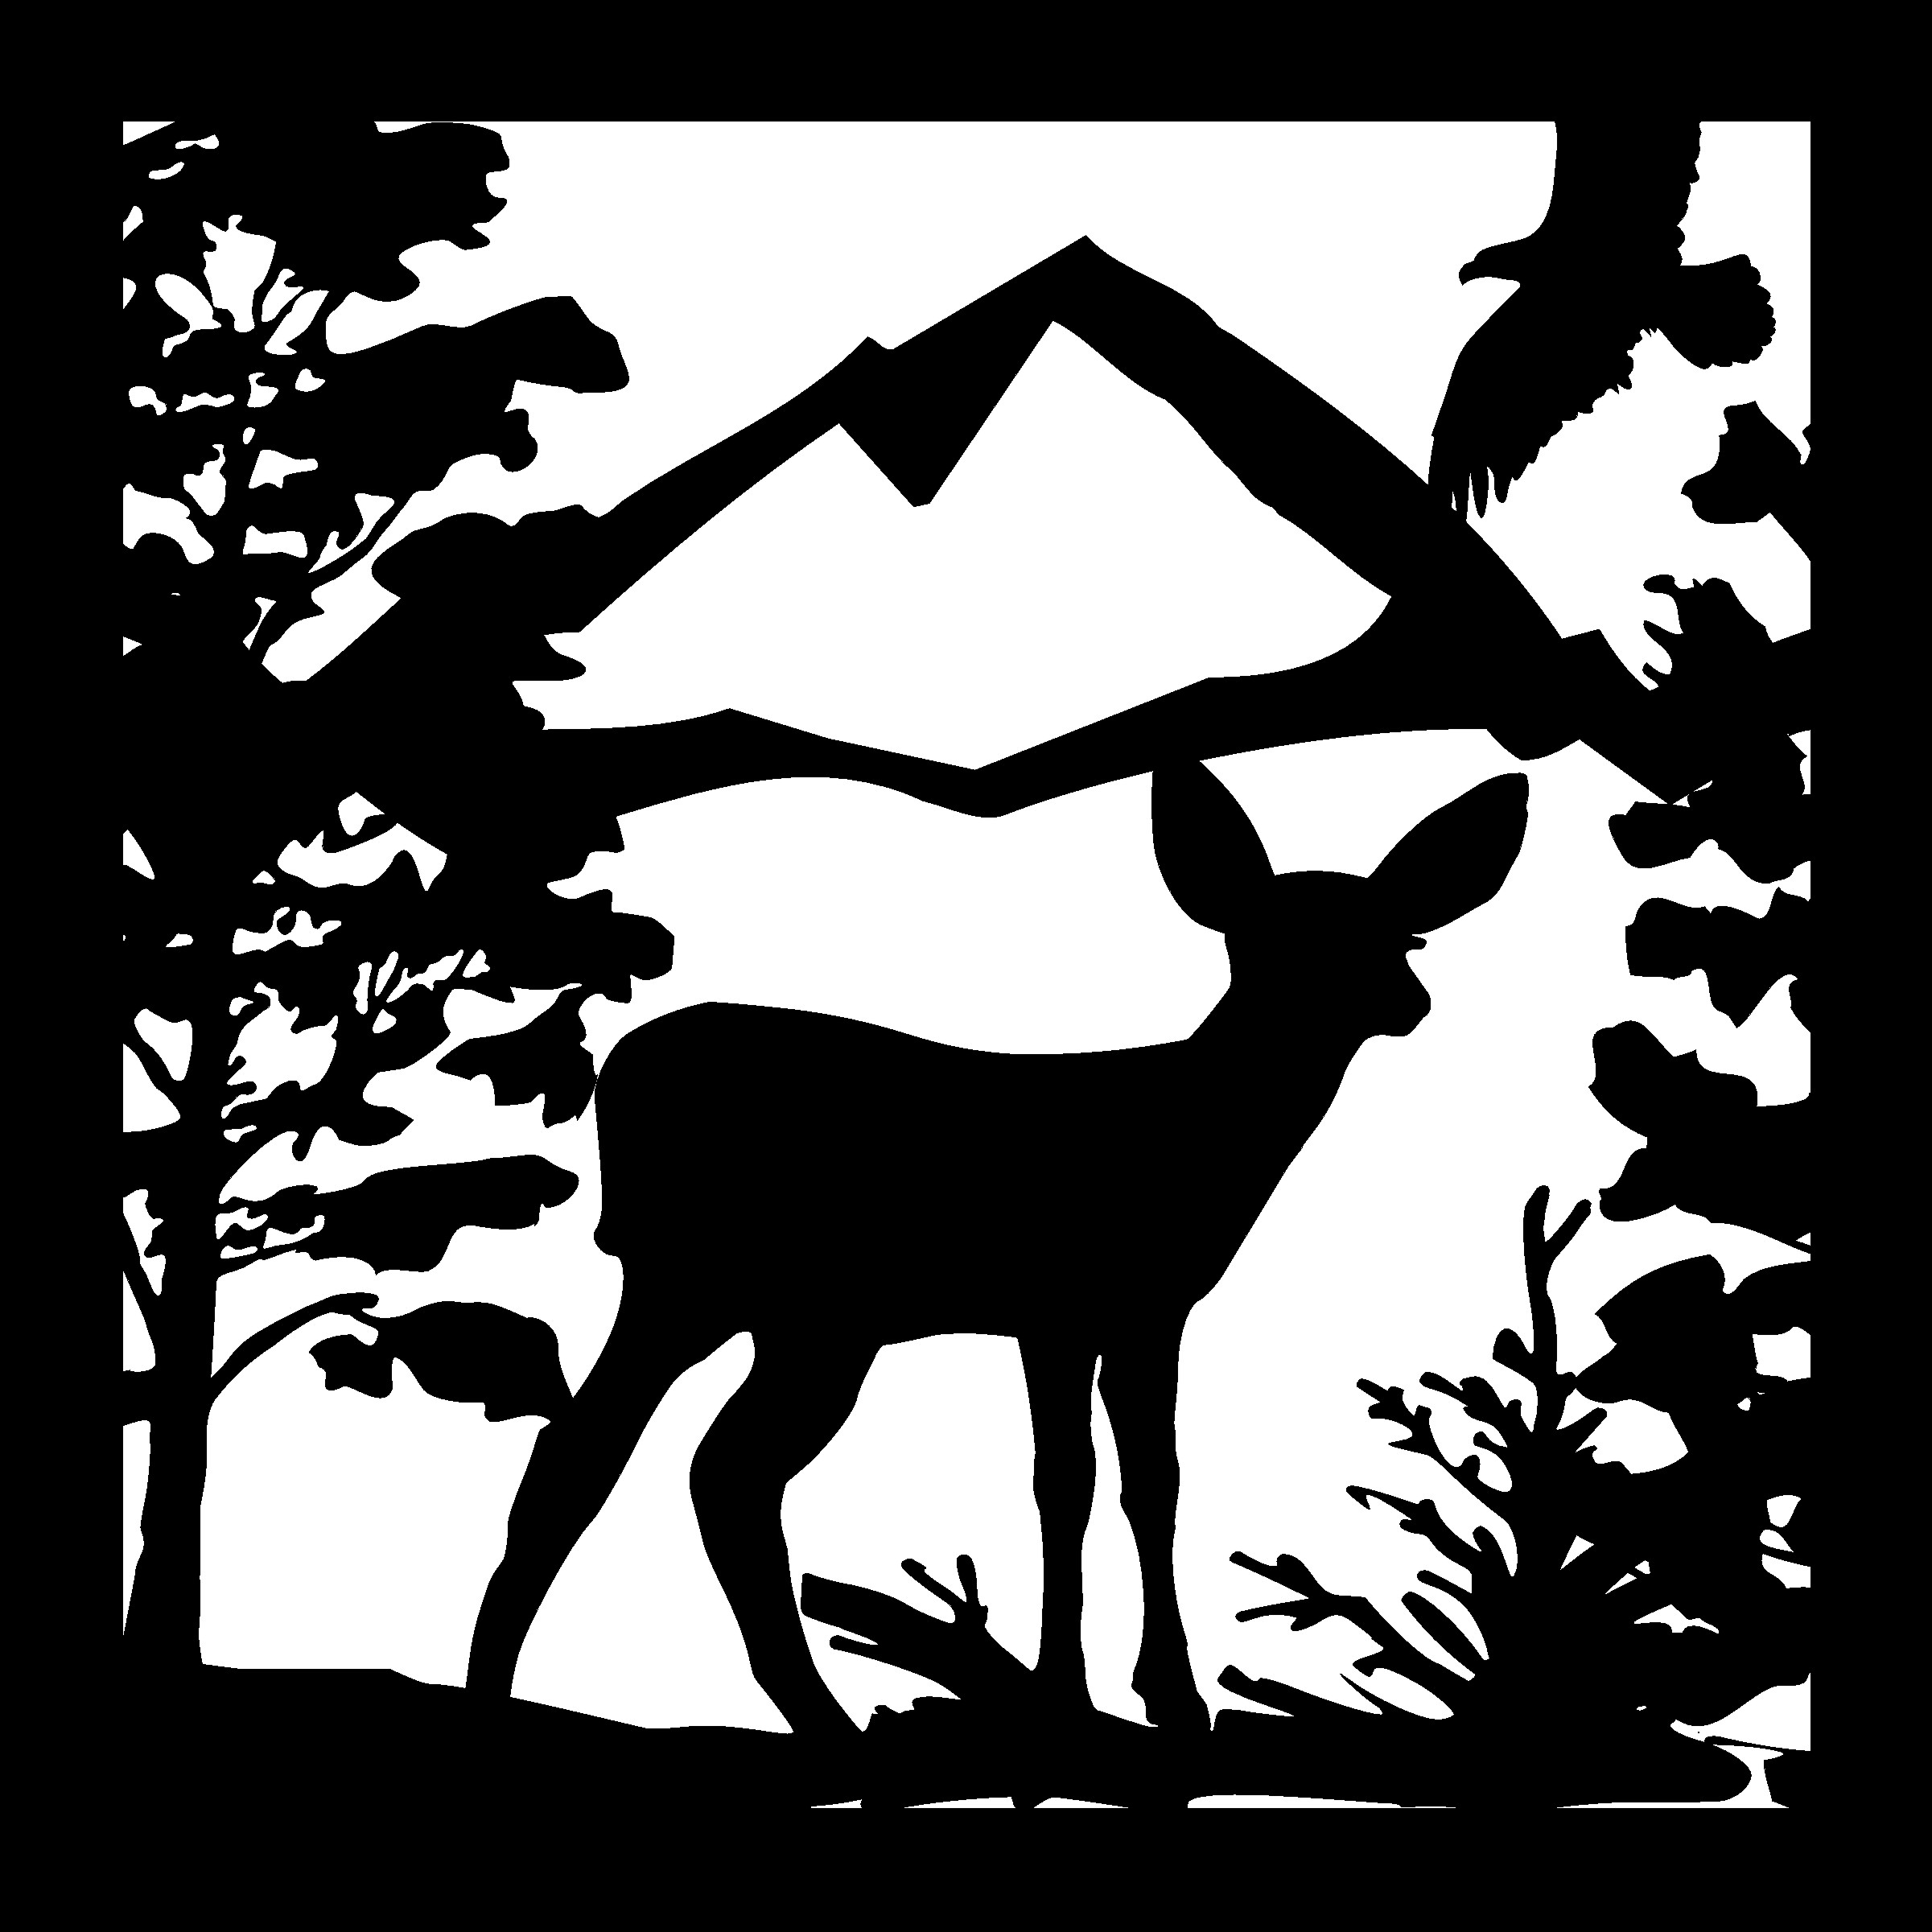 Deer Fawn Eagle Mountains For Plasma Cutting Free DXF File